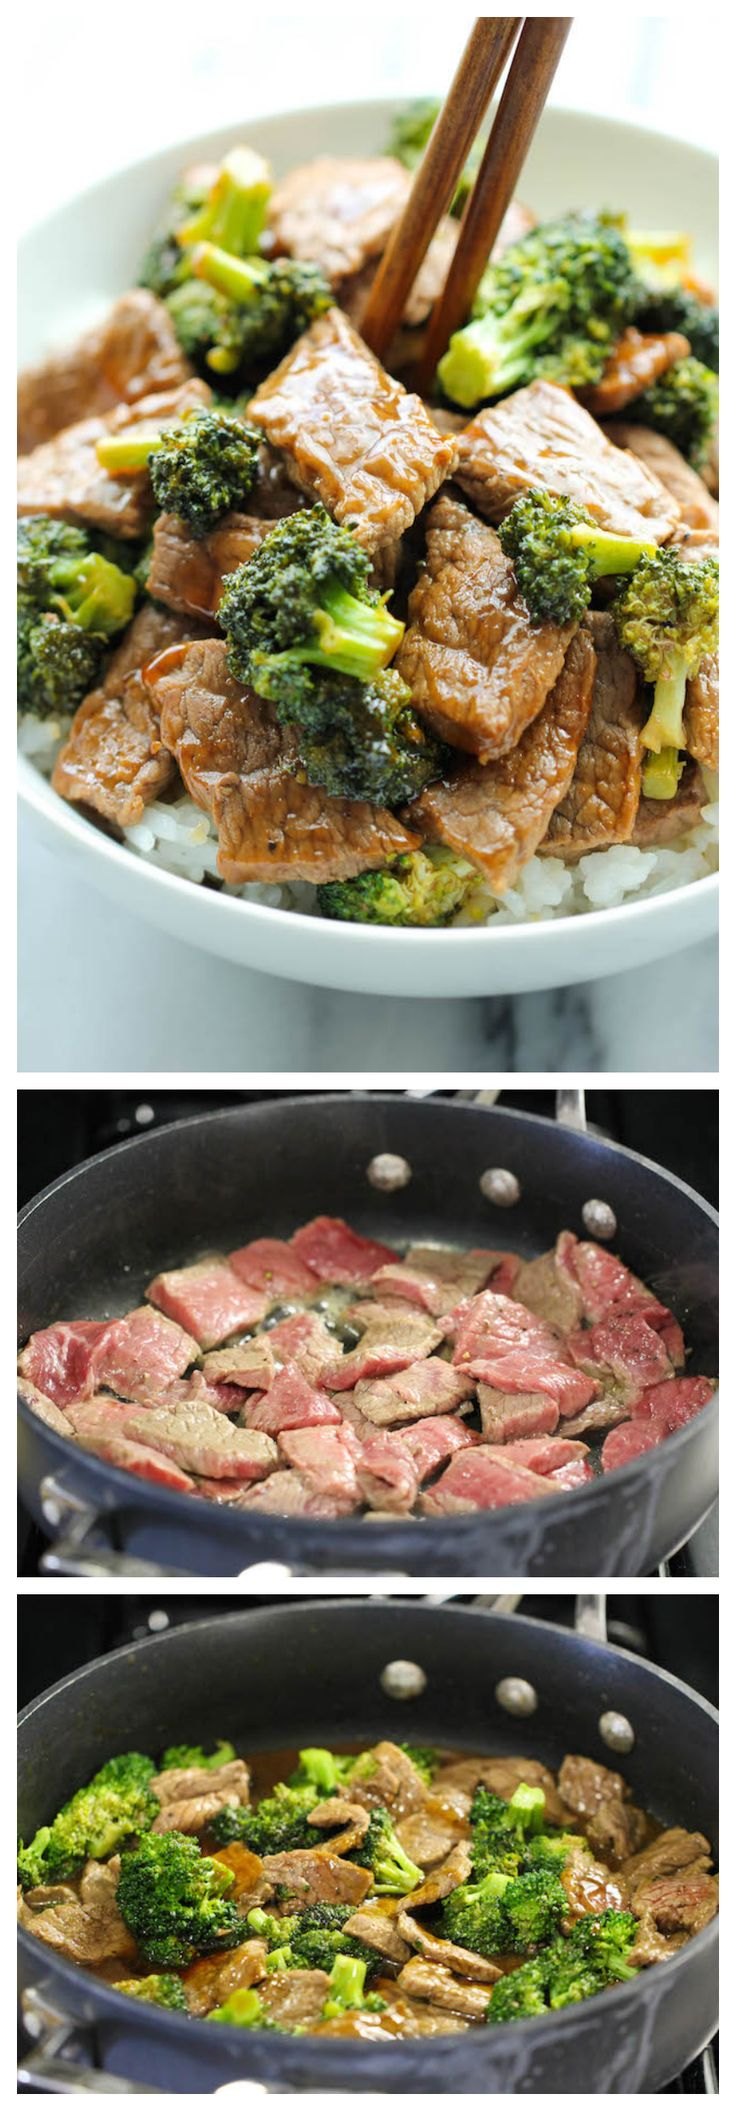 Easy Beef and Broccoli - made in just 15 min - quicker, cheaper and healthier than take-out!  Voedingscoach Marlo Wagner - Praktijk voor voedingscoaching en Beweegadvies